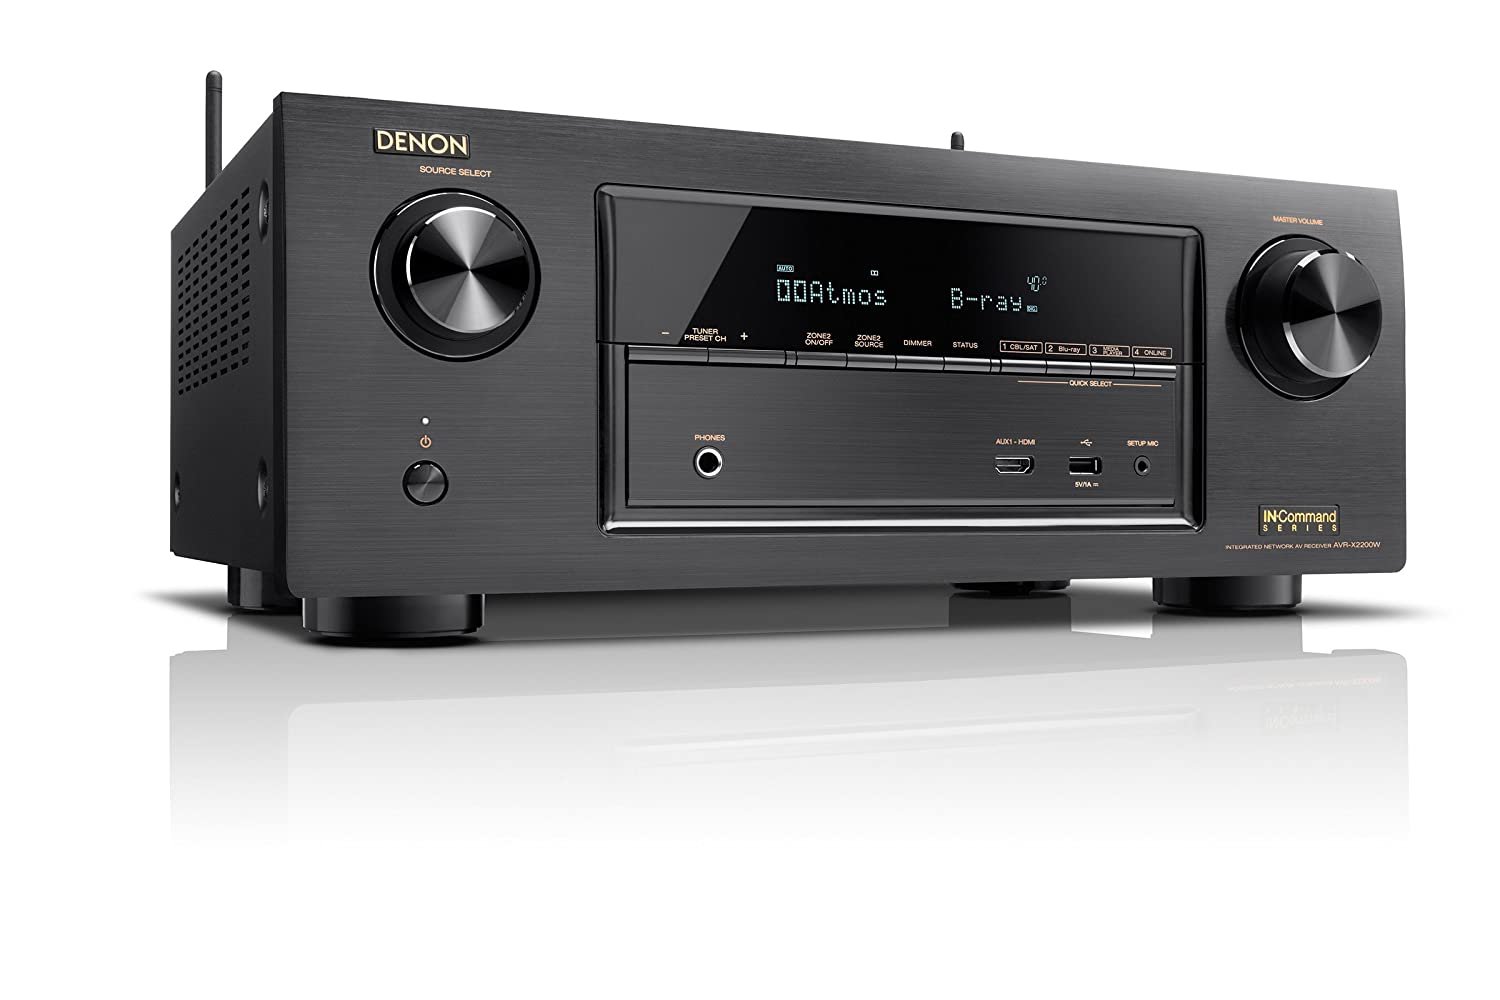 Amazon.com: Denon AVR-X2200W 7.2 Channel Full 4K Ultra HD A/V Receiver with  Bluetooth and Wi-Fi: Home Audio & Theater